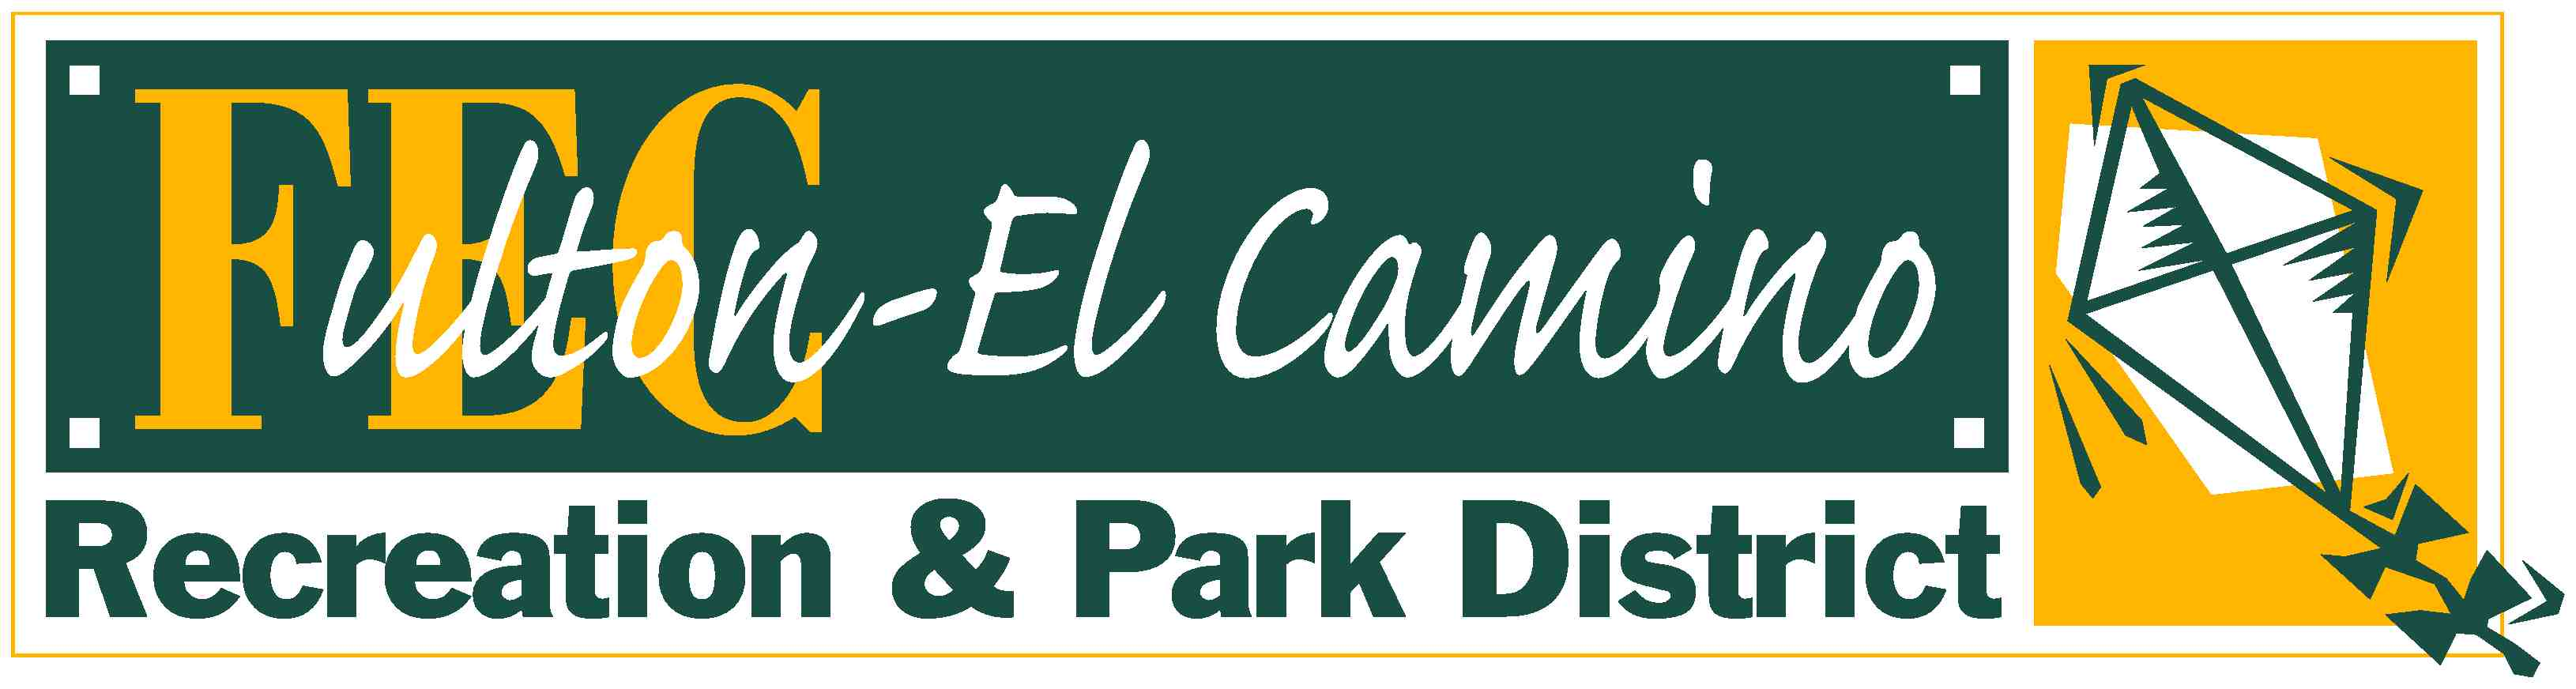 Fulton - El Camino Recreation and Park District